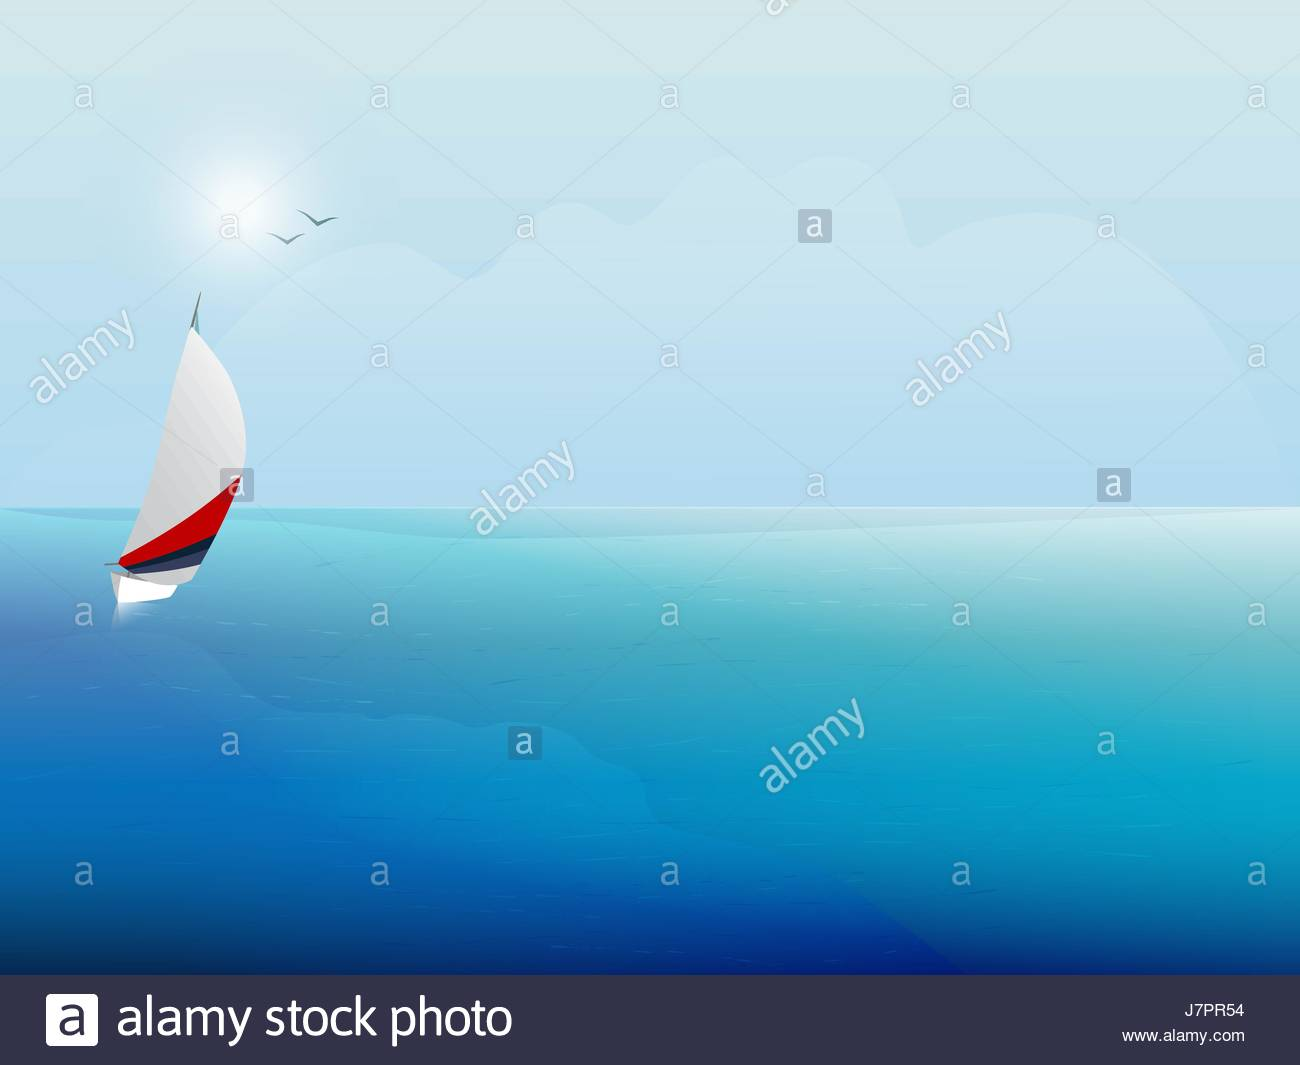 Sailing boat on the blue sea. Yacht and ocean. Background. - Stock Vector